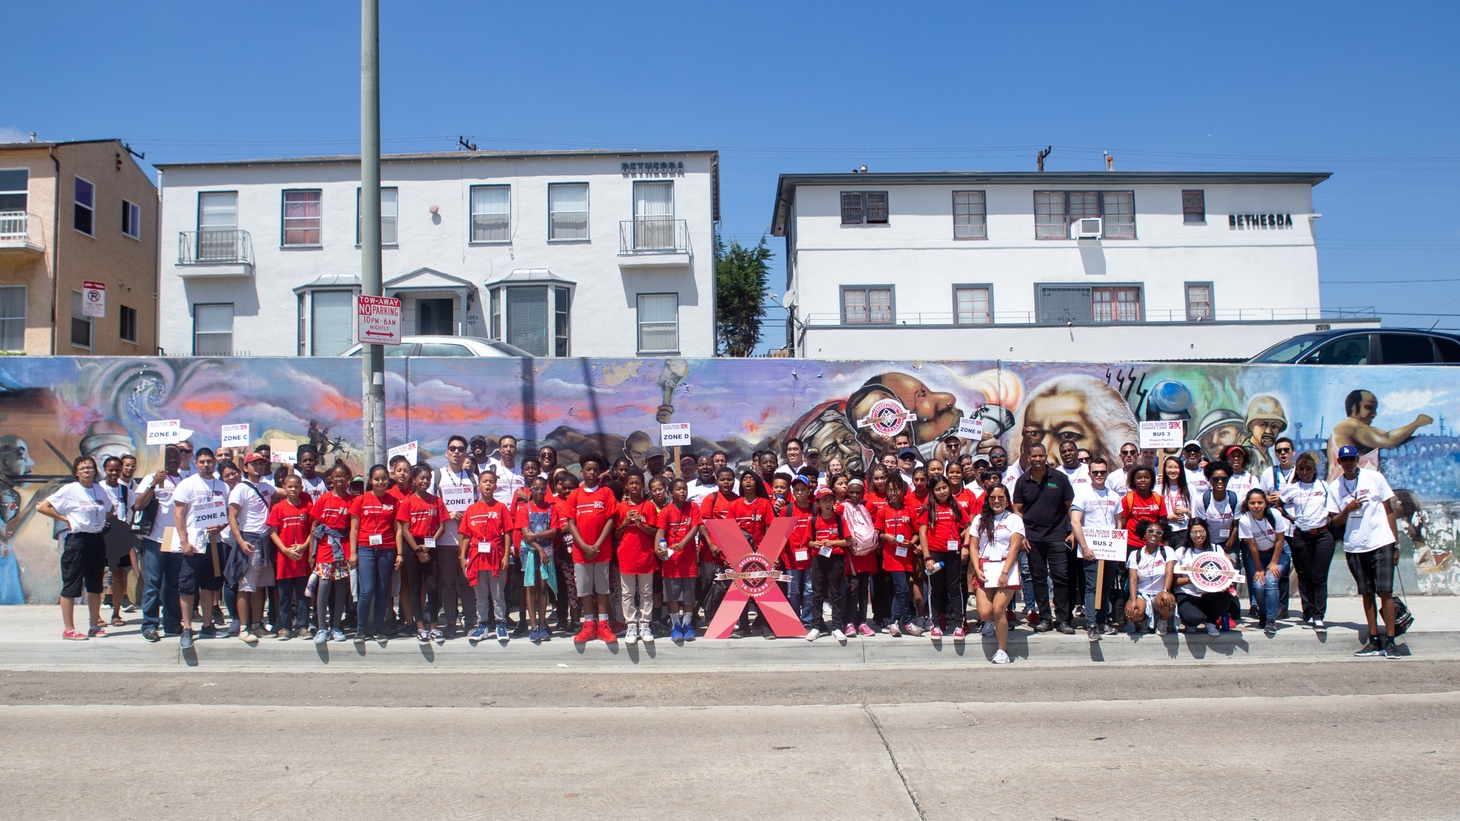 SoCalNOMA (National Organization of Minority Architects) holds a summer camp to introduce young people to careers in architecture.